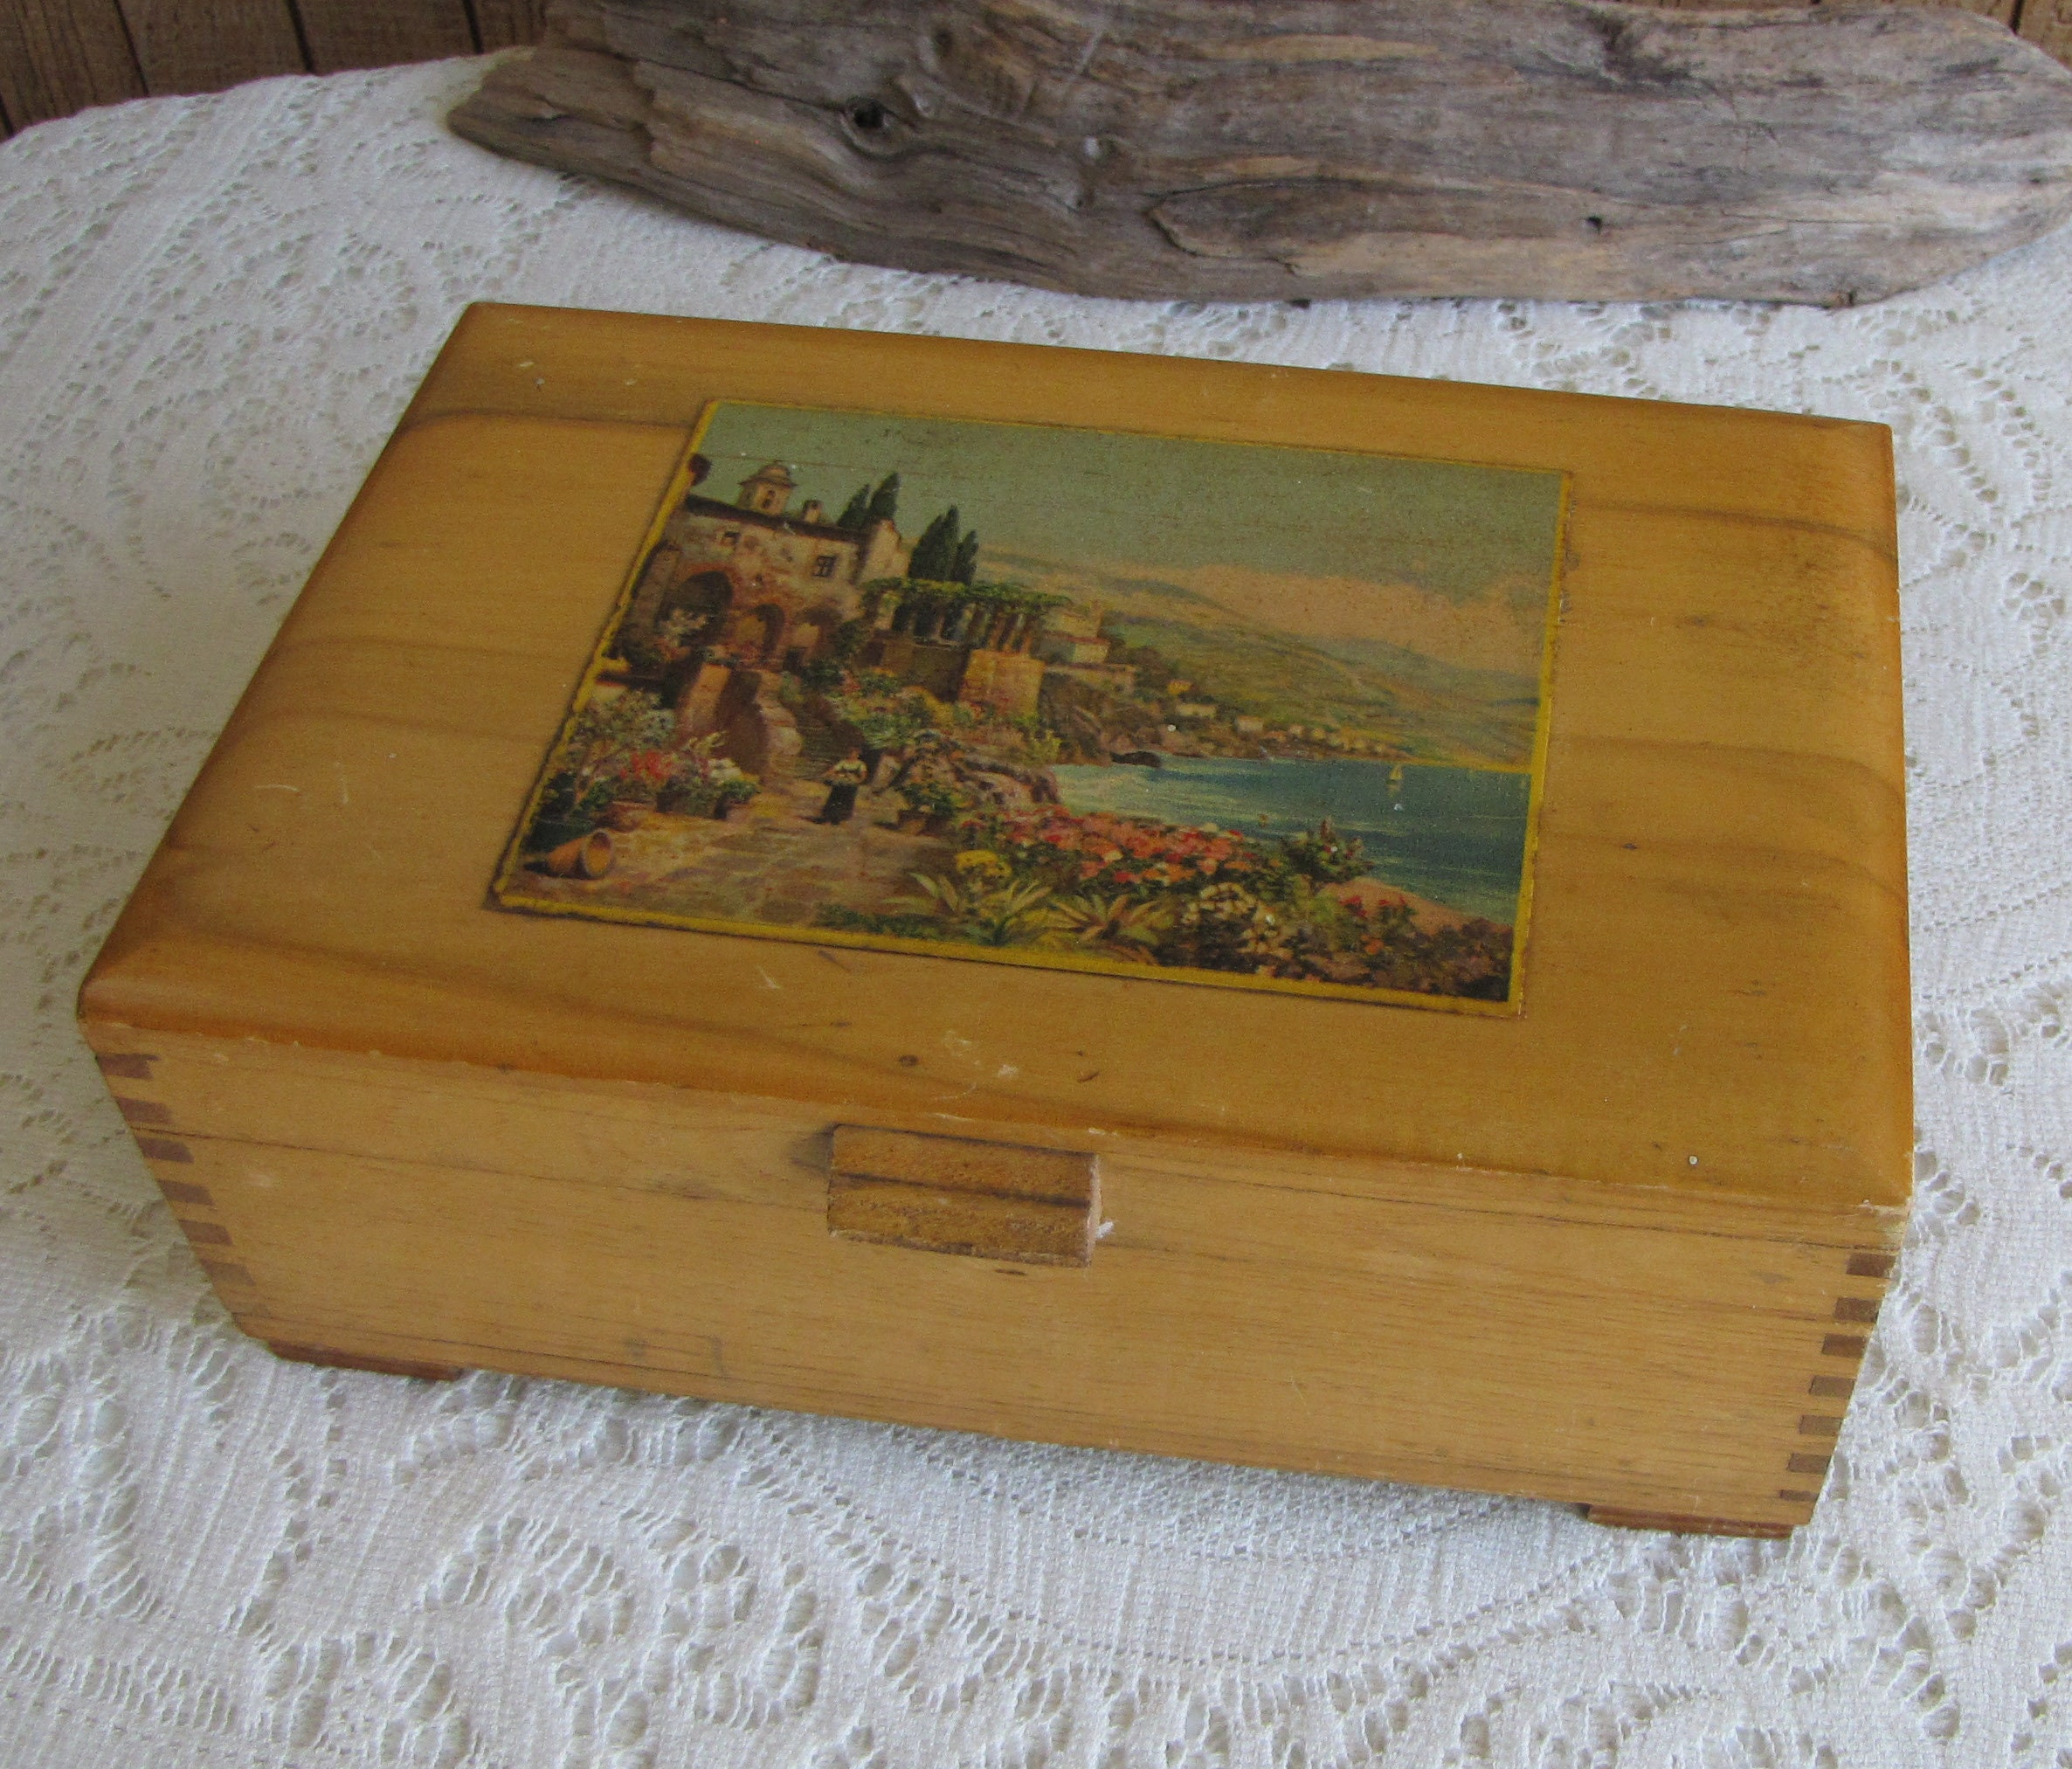 1940s Wood Jewelry Box Vintage Jewelry and Accessories Storage